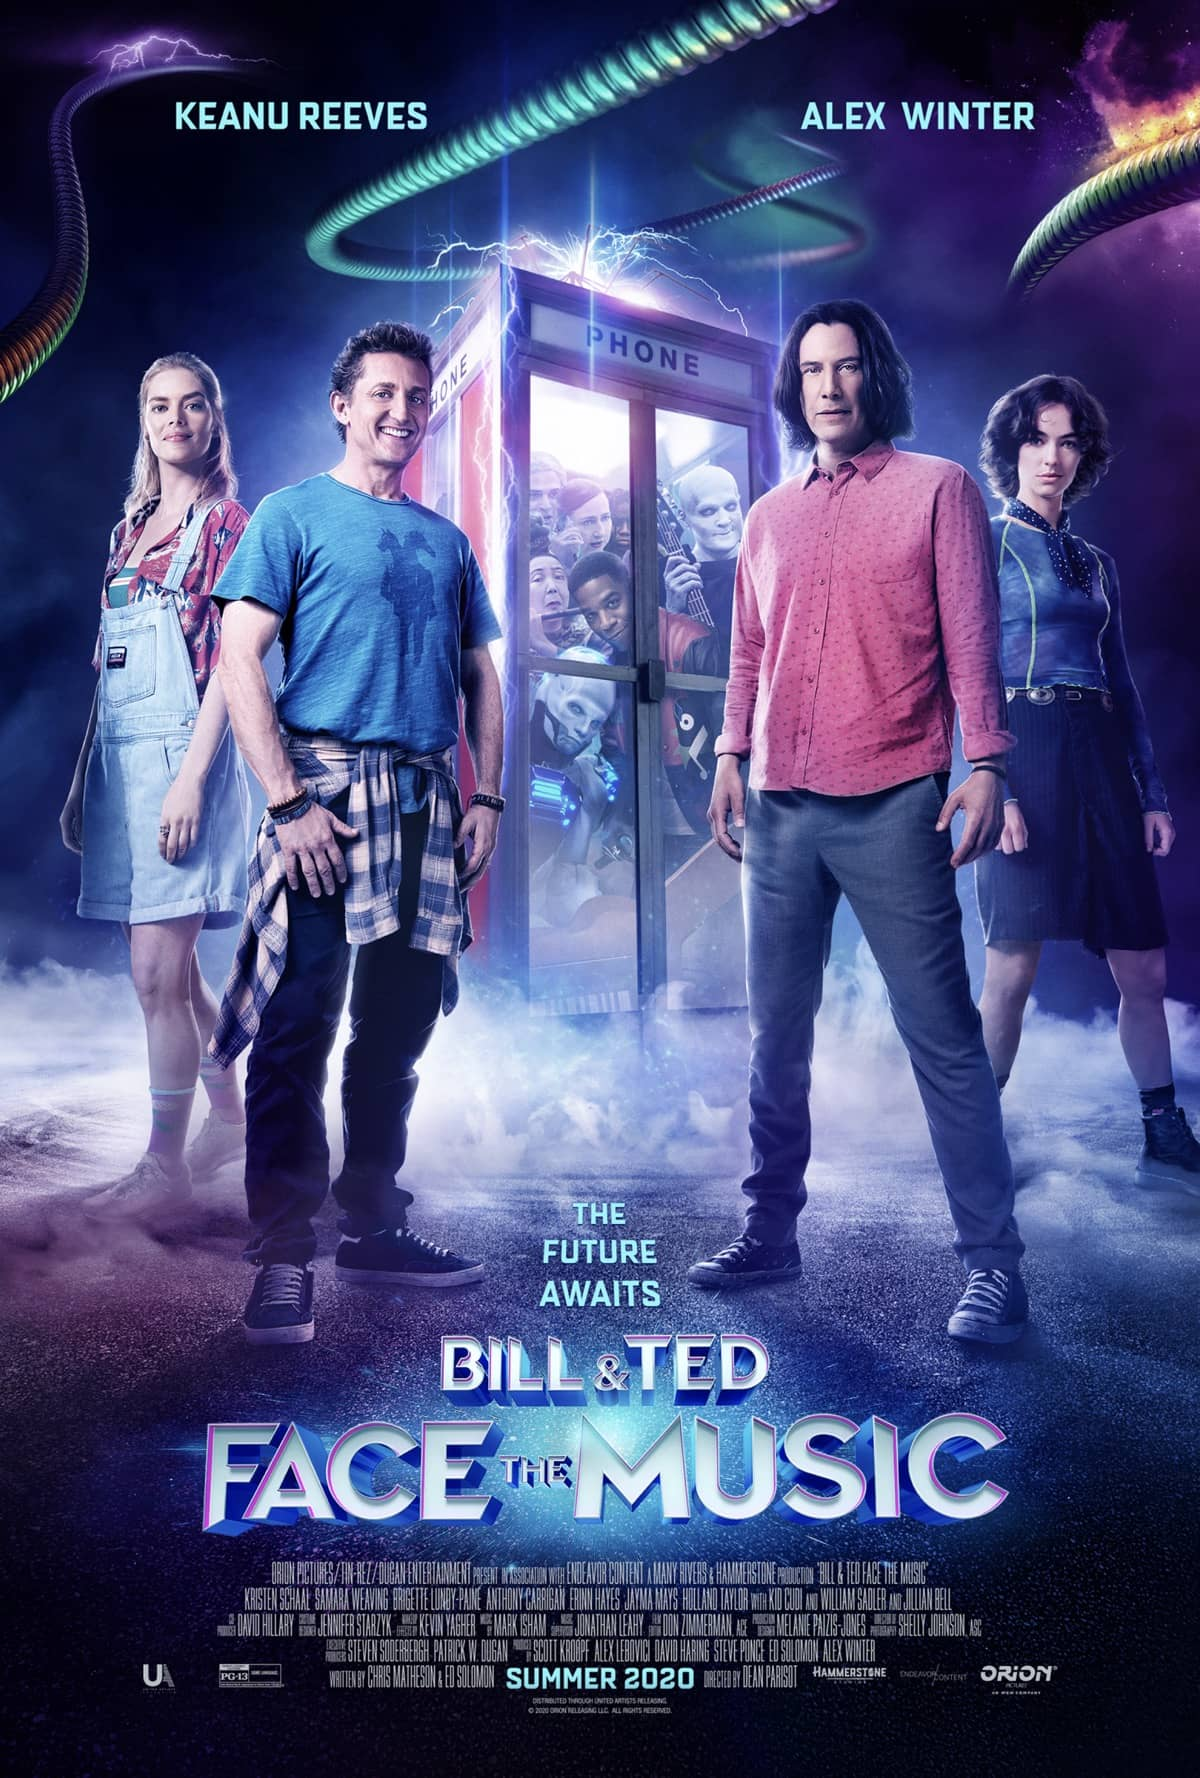 BILL AND TED FACE THE MUSIC Official Poster